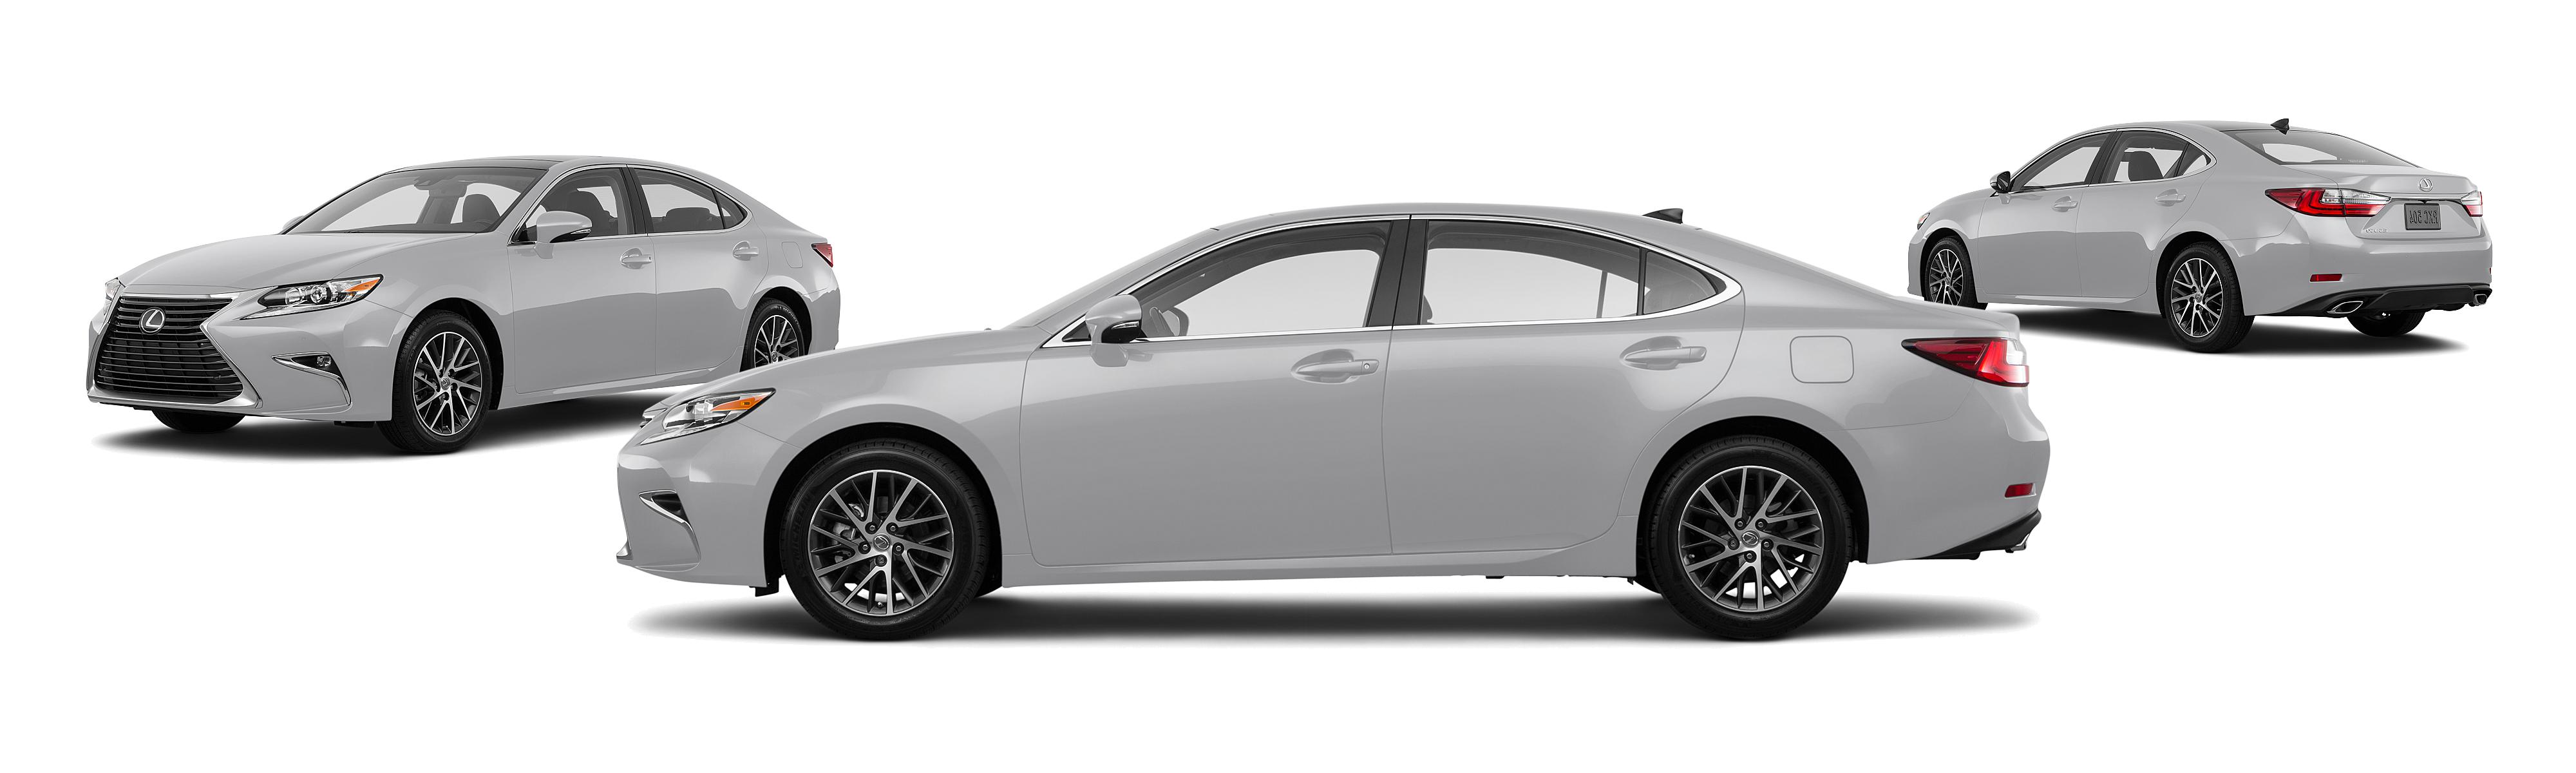 2017 Lexus ES 350 4dr Sedan Research GrooveCar